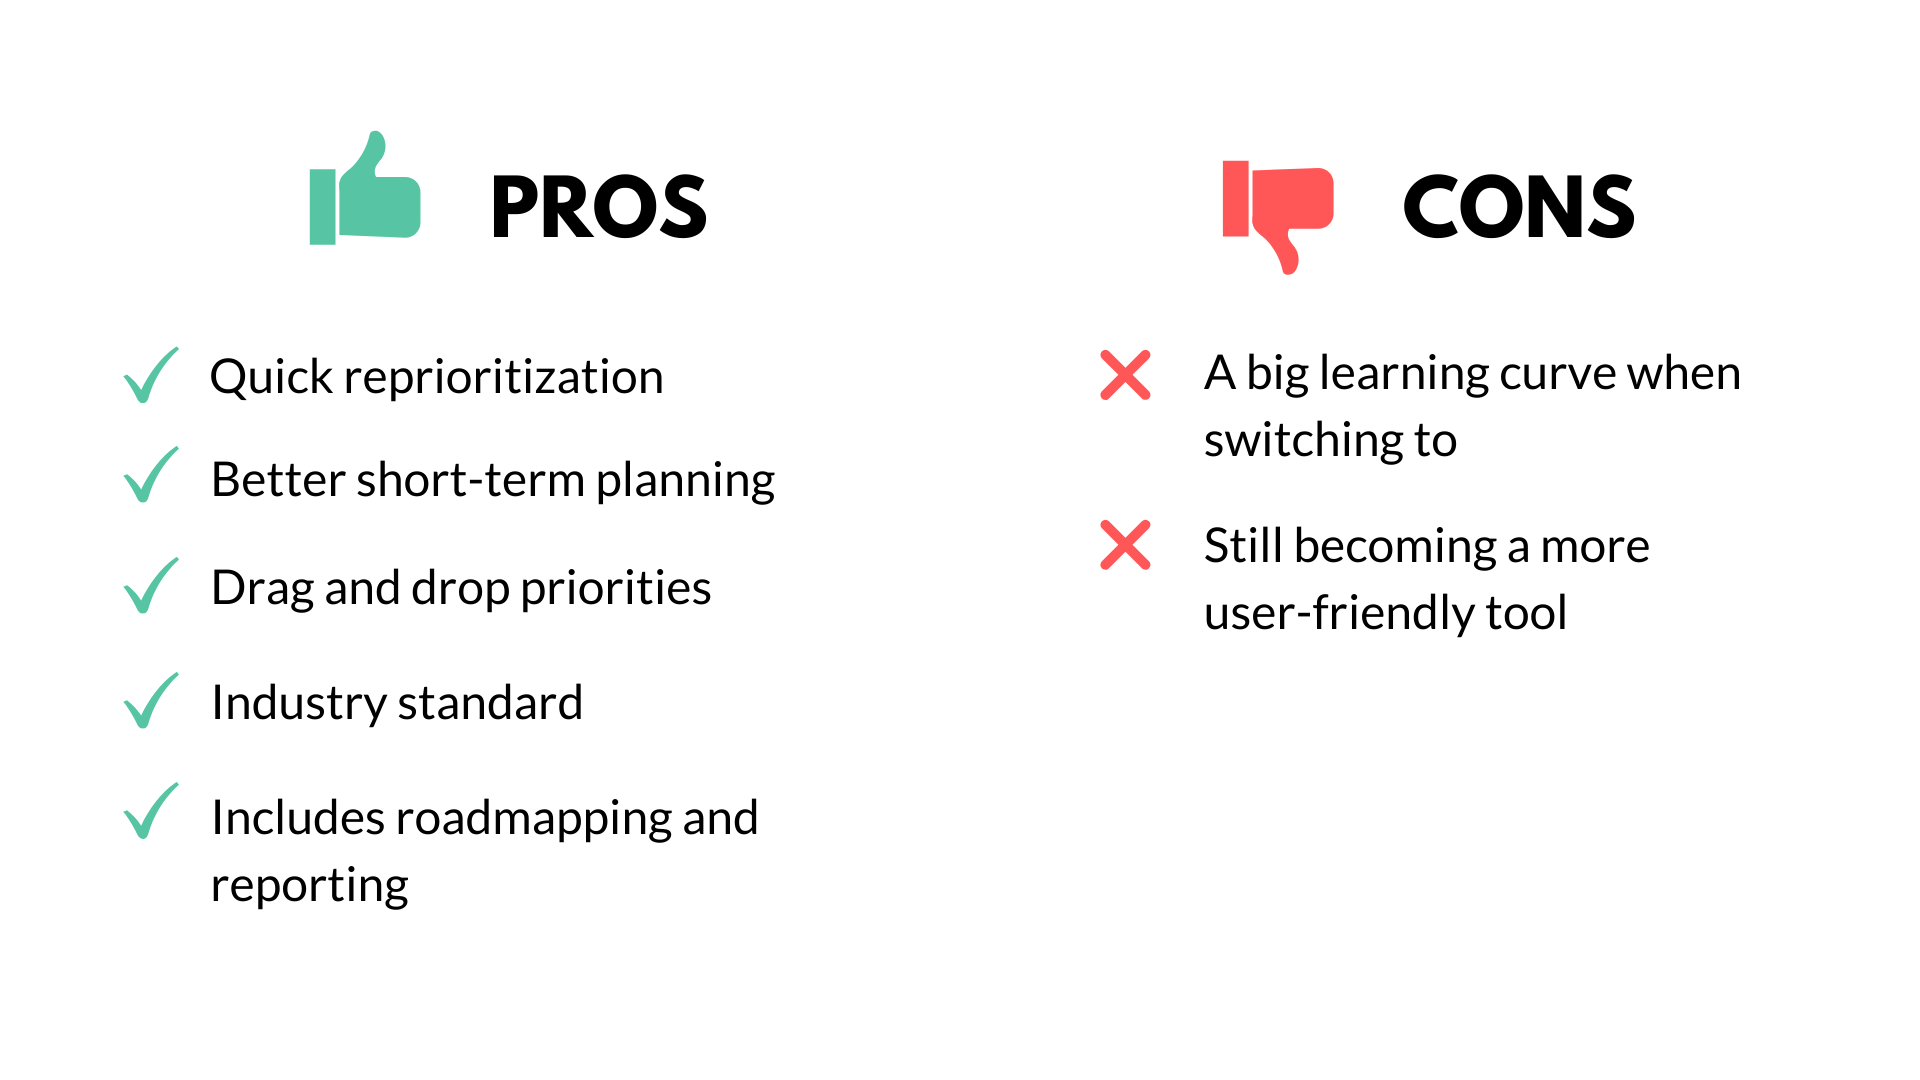 pros and cons chart of Jira tool, black green and red